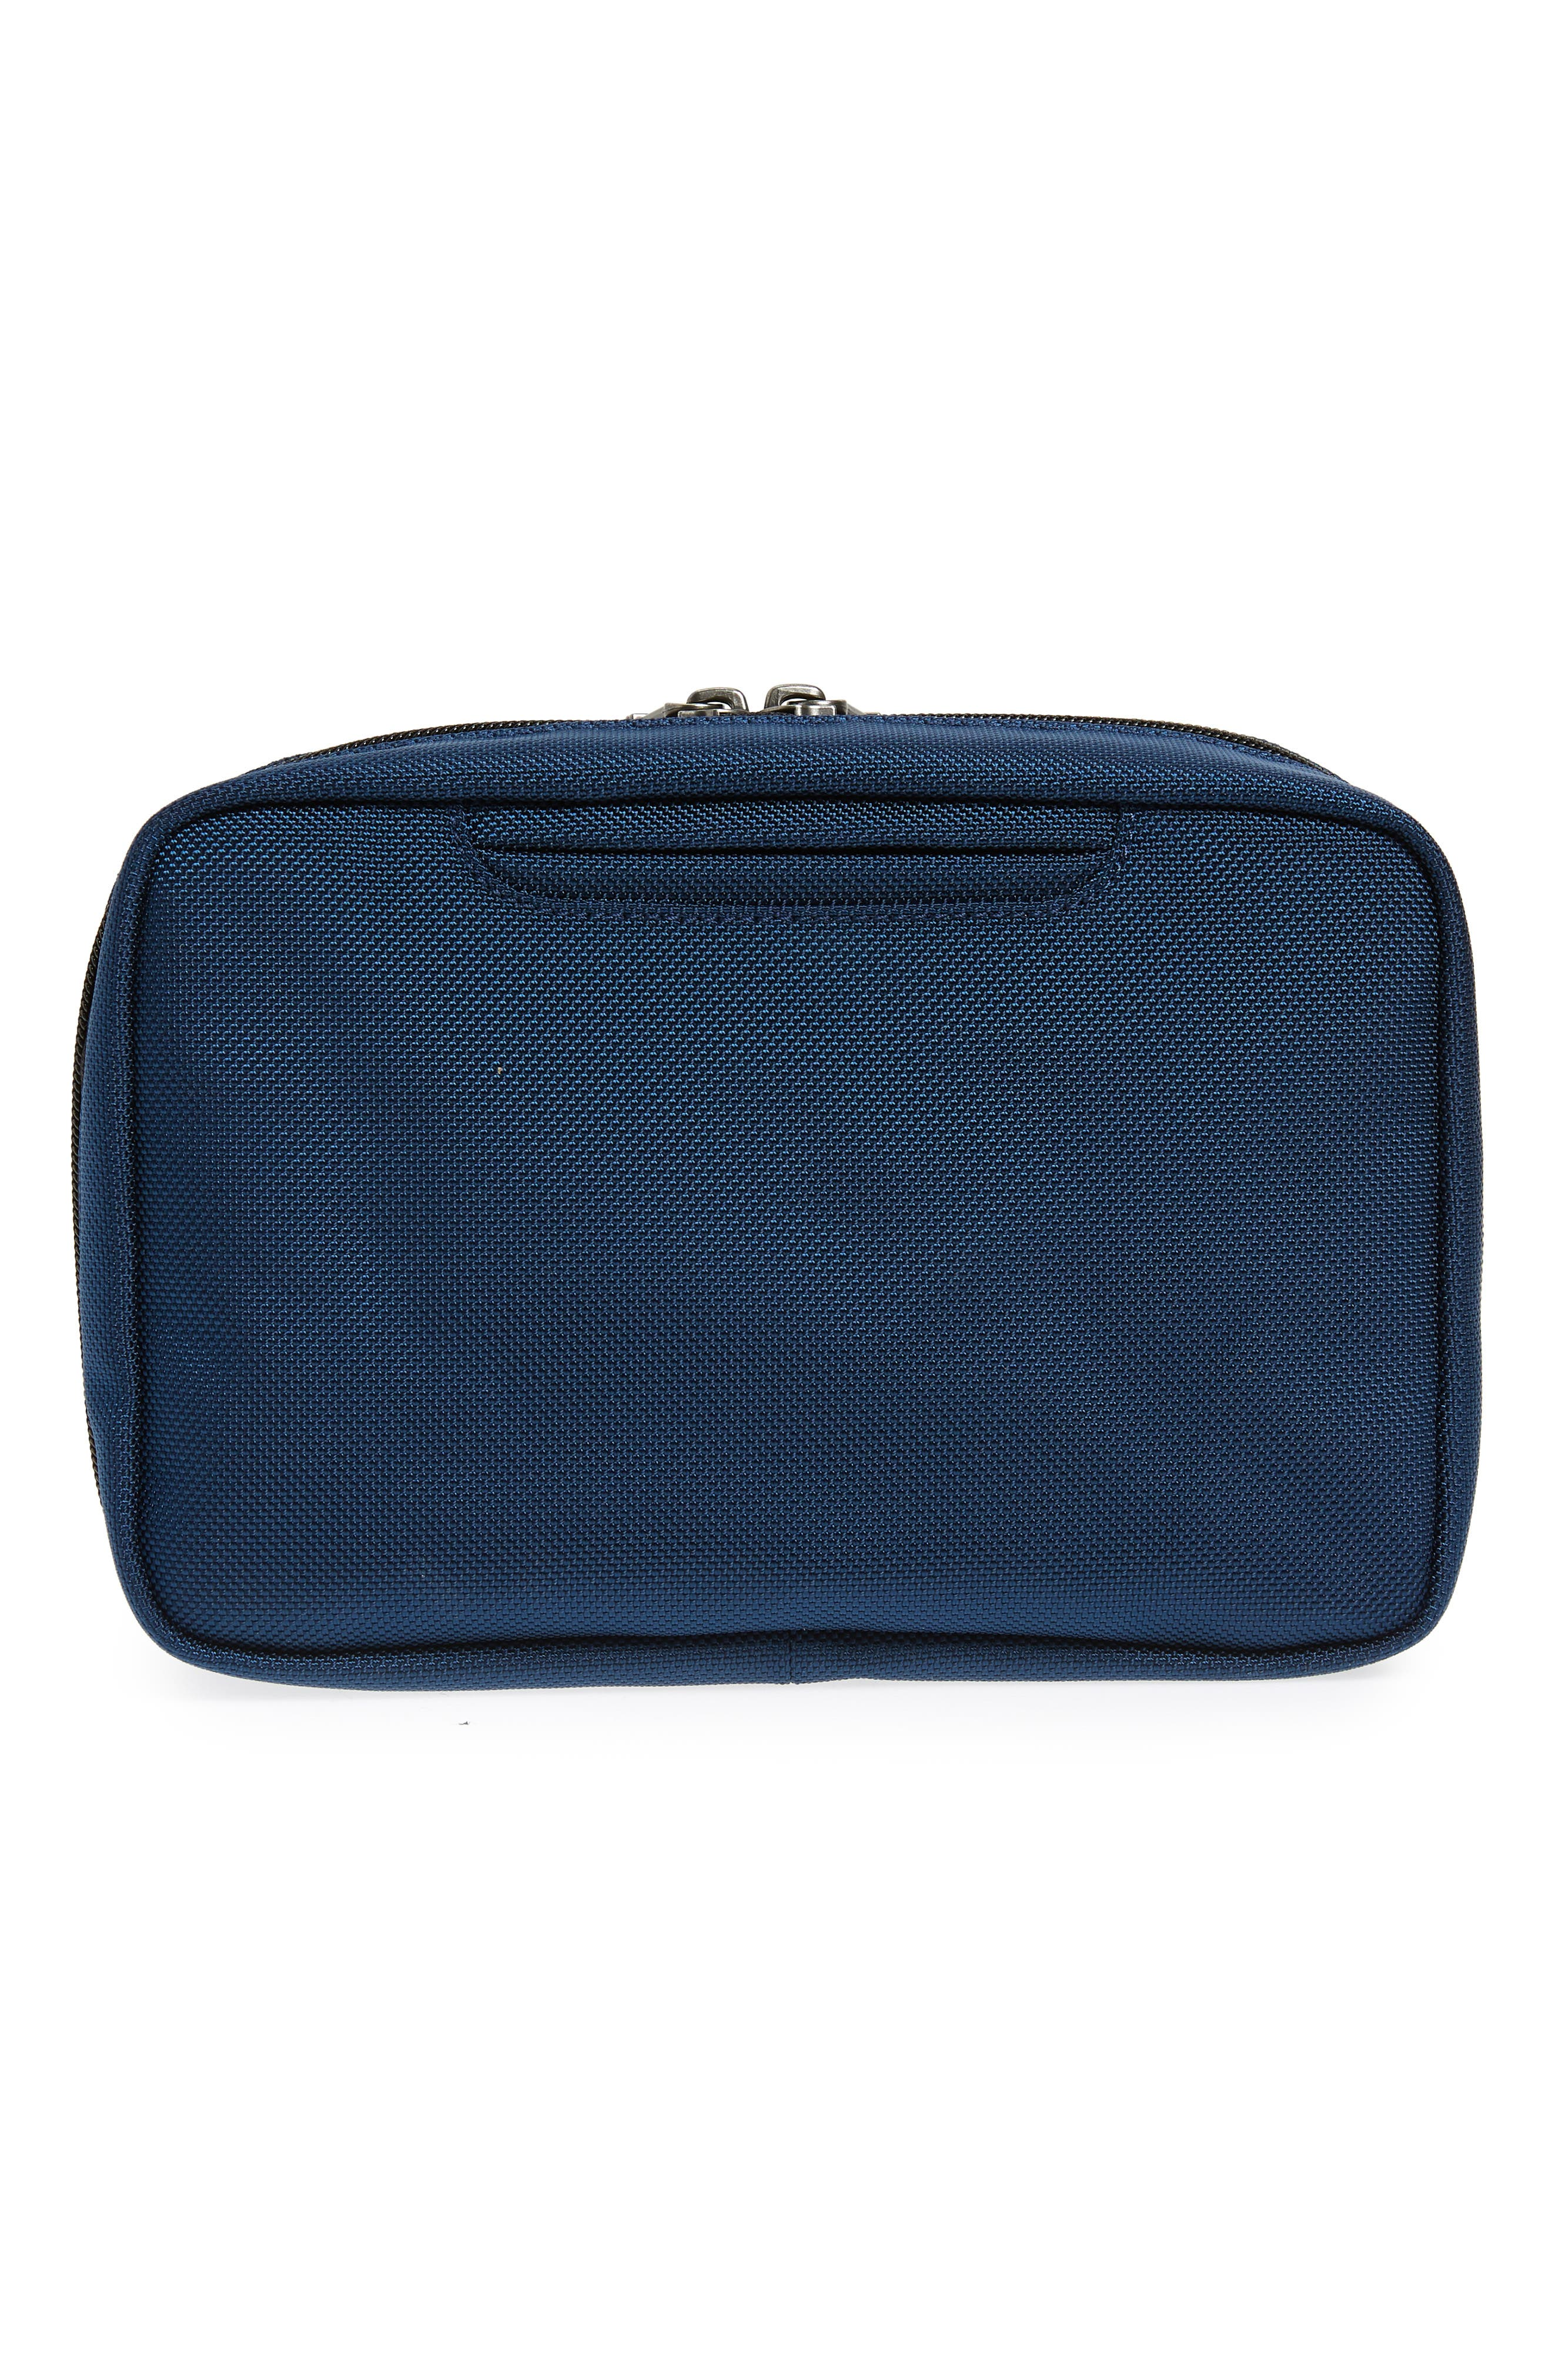 TUMI,                             Alpha Bravo - Reno Travel Kit,                             Alternate thumbnail 2, color,                             415